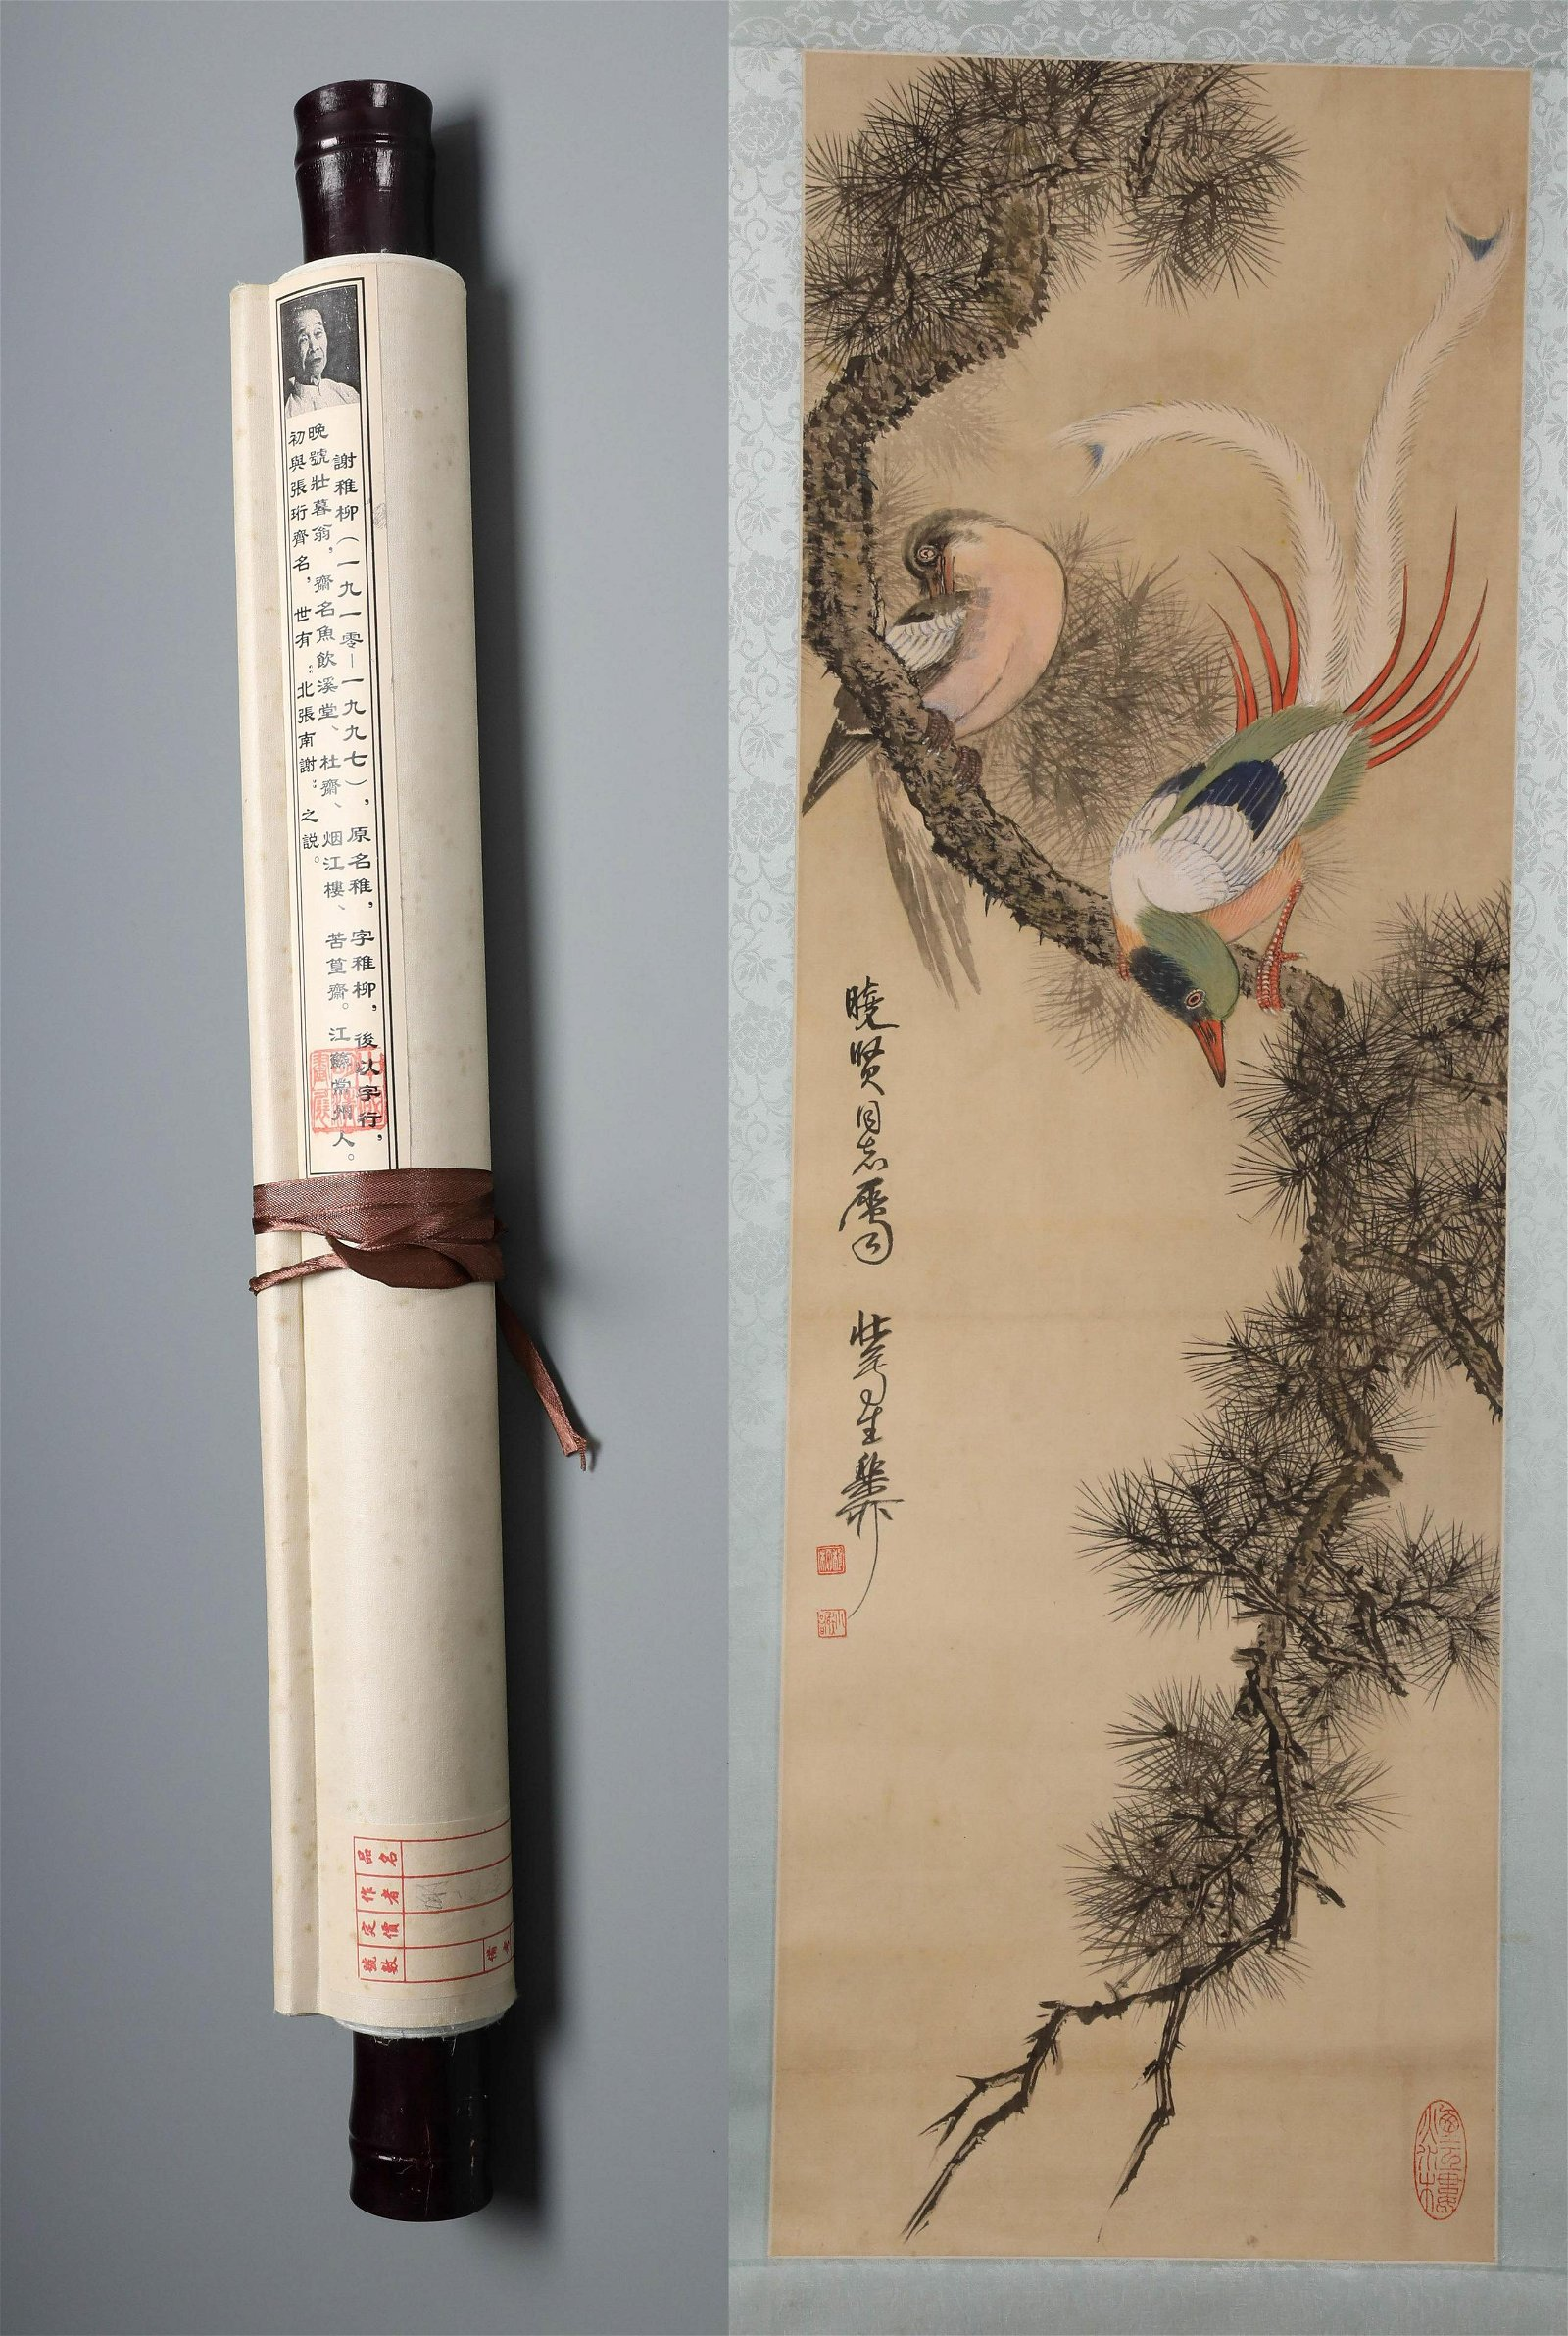 A Chinese Hand-drawn Painting Signed by Xie zhiliu